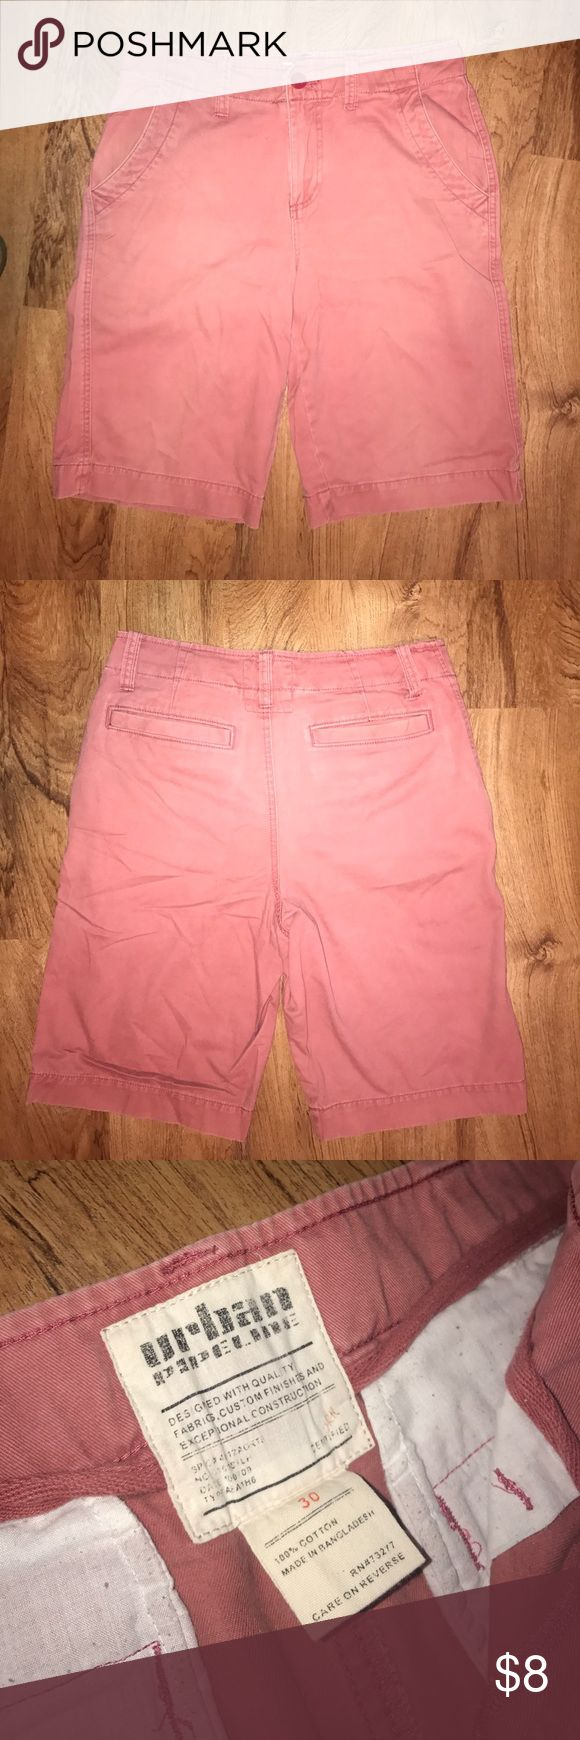 Distressed Red Chino Cloth Shorts Distressed Red Chino Shorts. Size 30 waist. Below the knee length. Urban Pipeline. 100% cotton. Made in Bangladesh. Great summer short, perfect for back to school. urban pipeline Shorts Flat Front